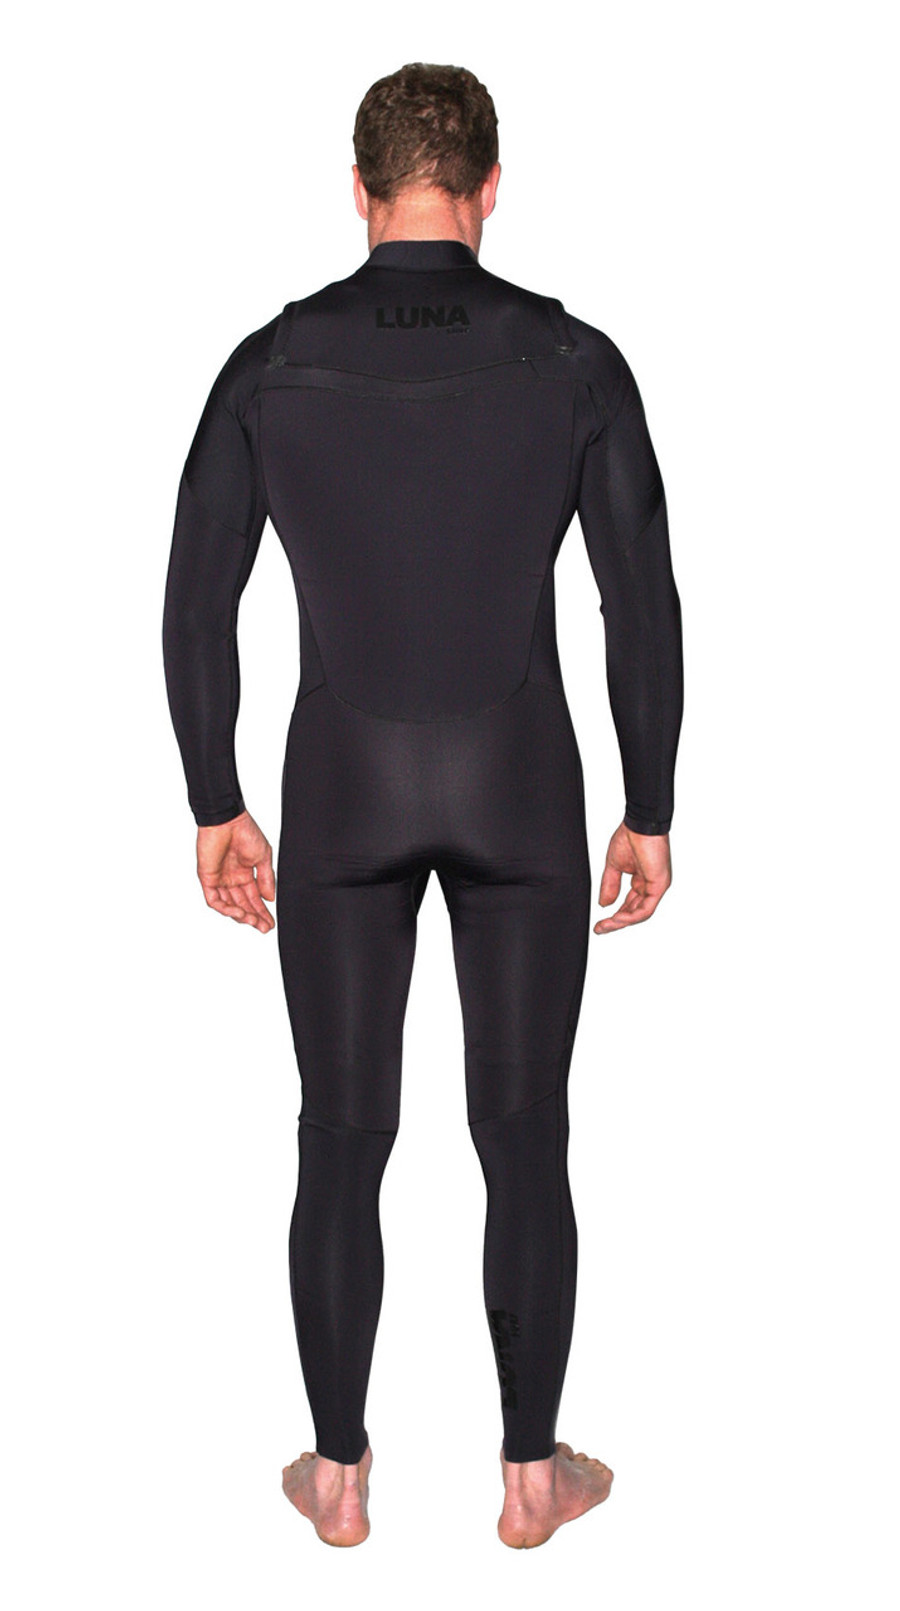 mens 3.2mm wetsuit black stealth